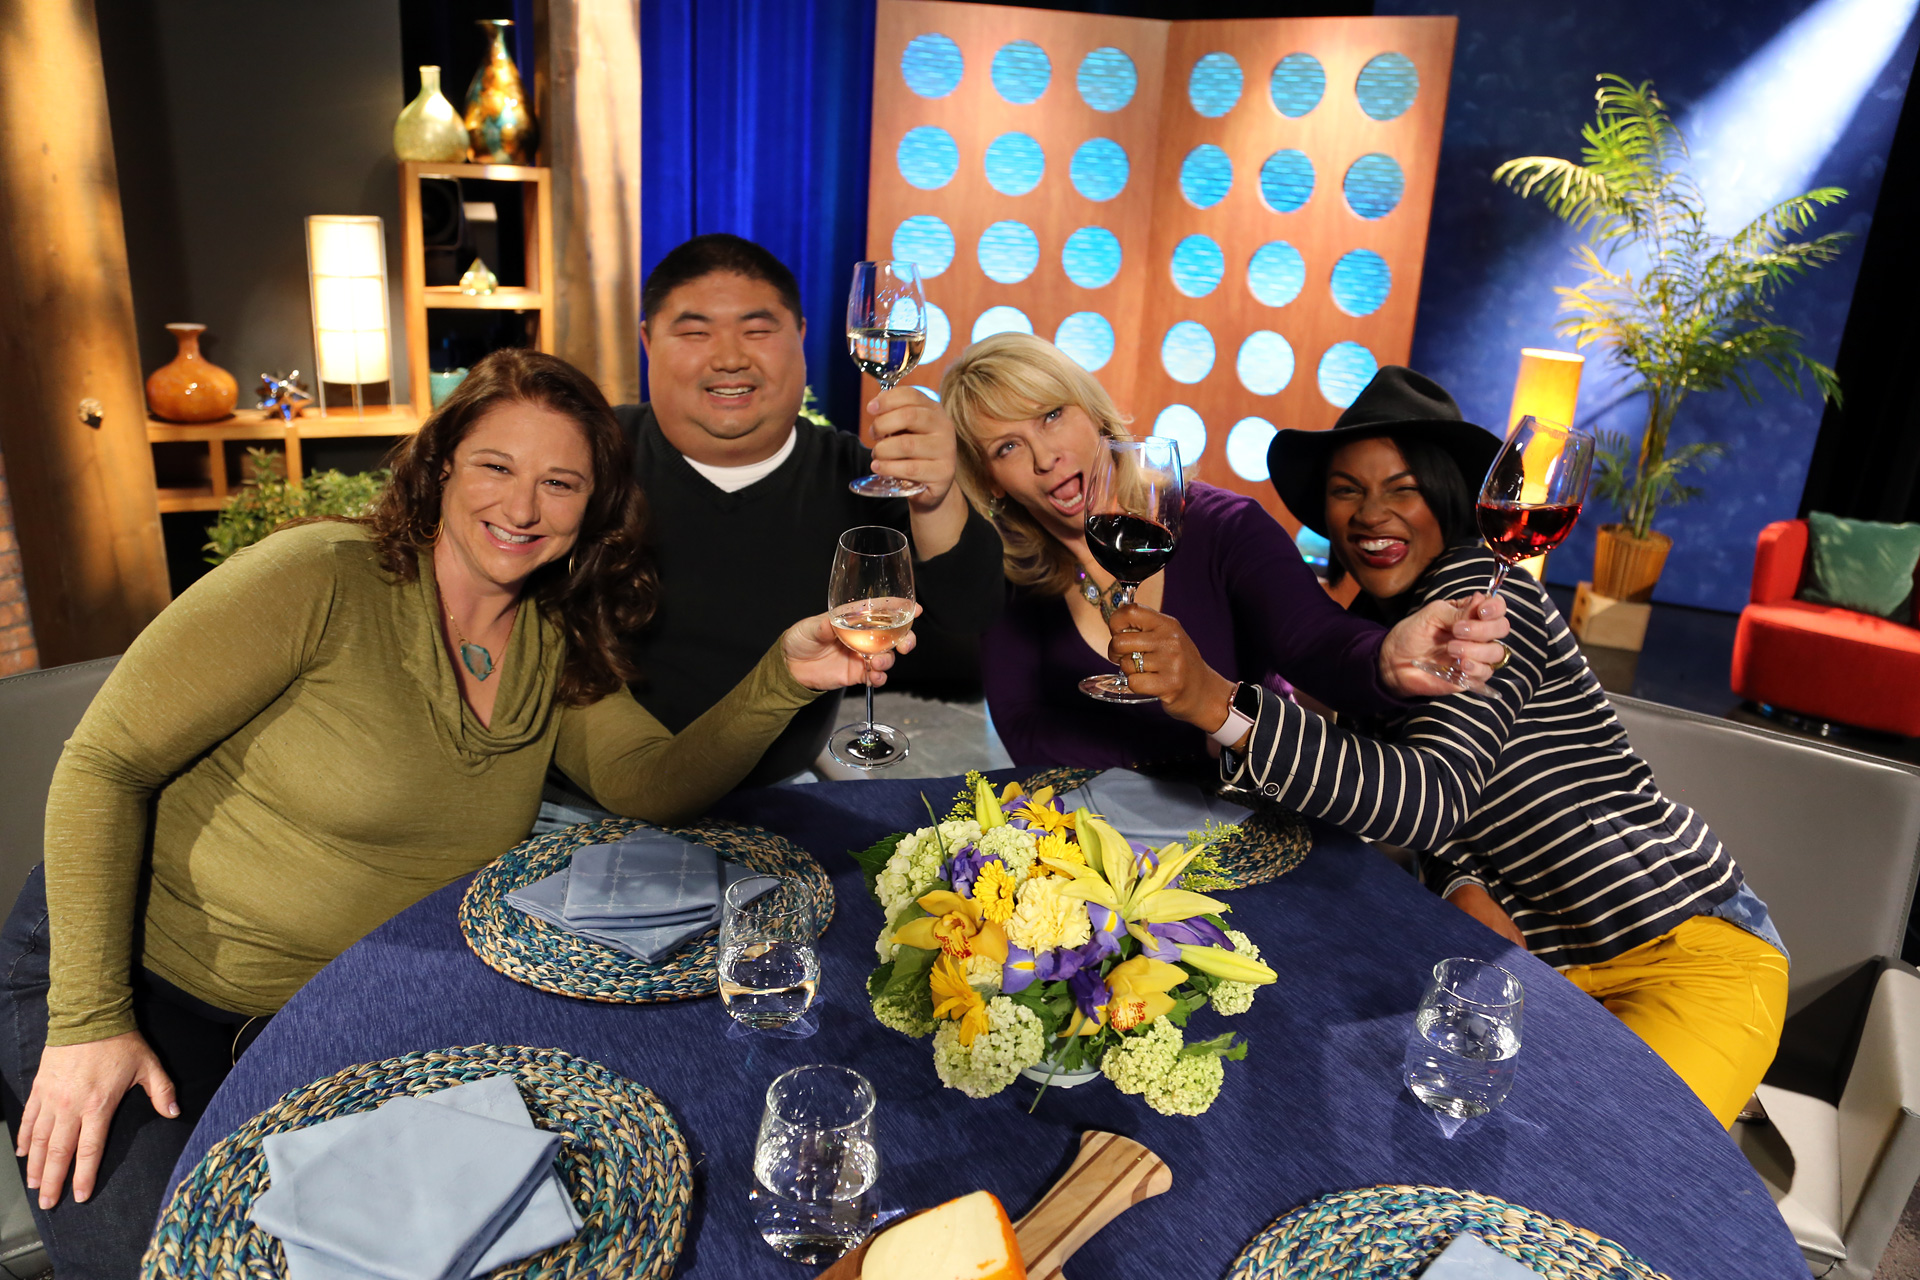 Host Leslie Sbrocco and guests having fun on the set of the episode 15 of season 11.